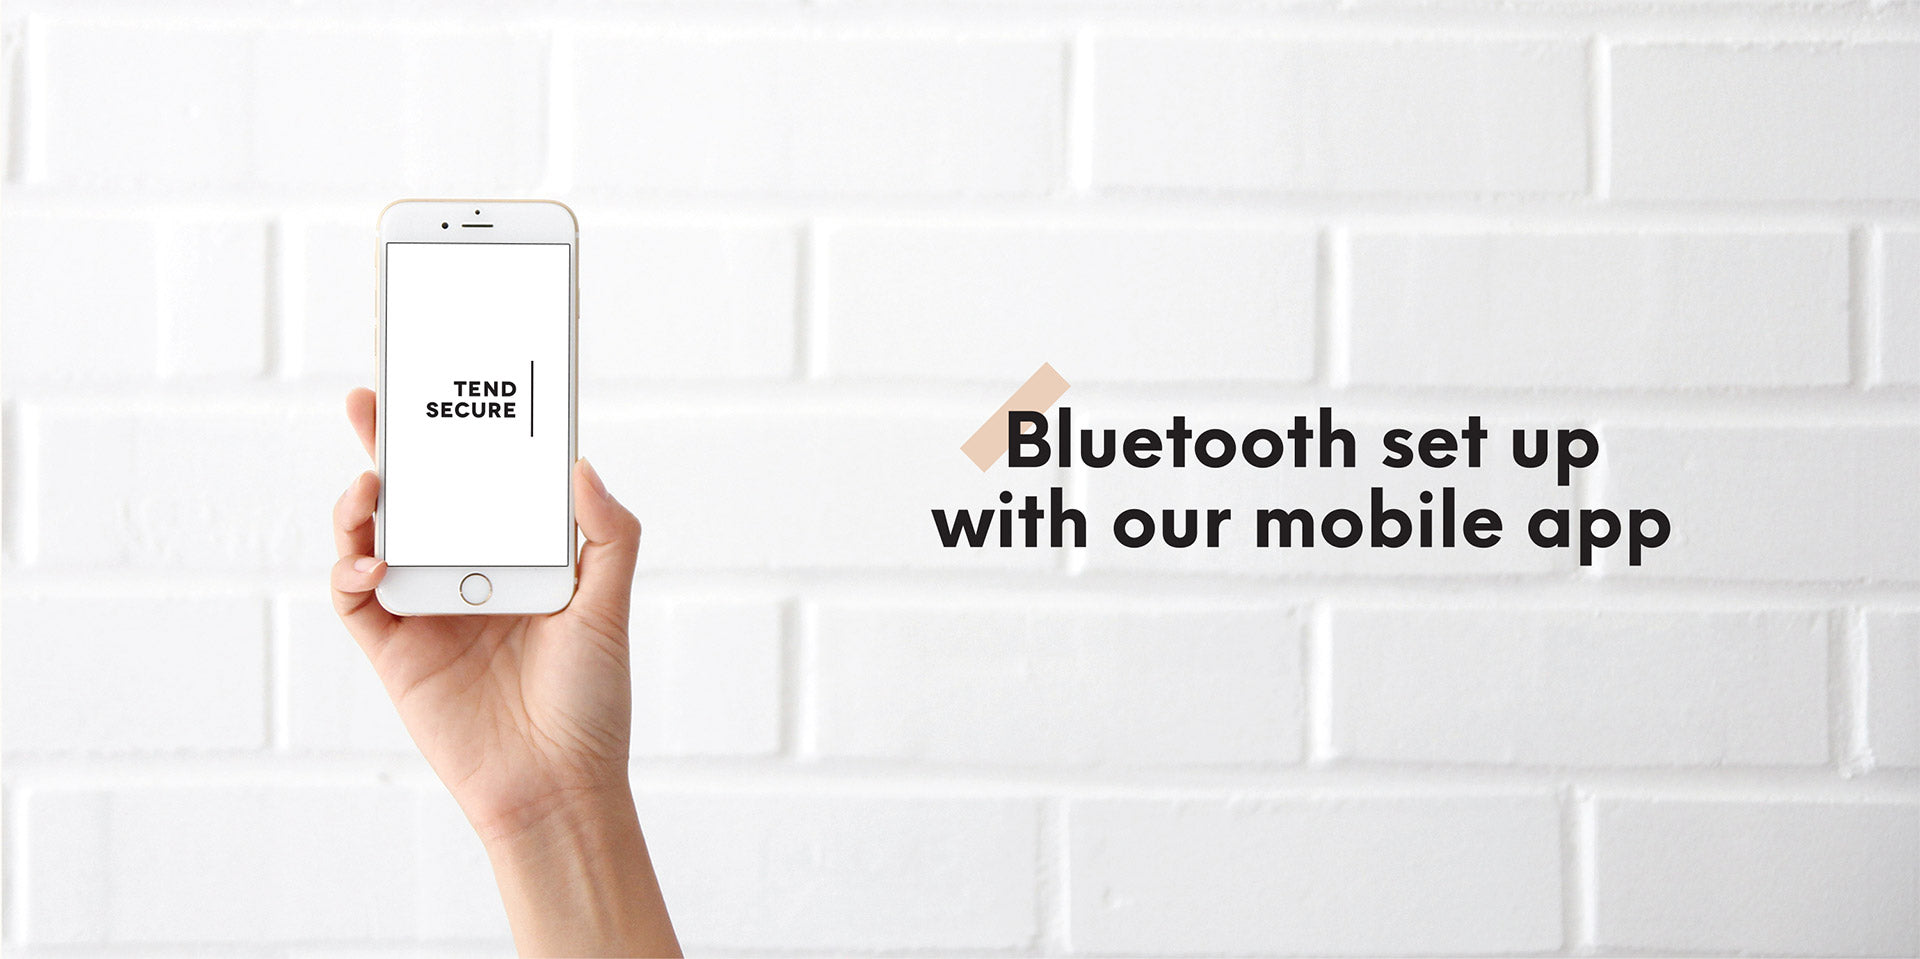 Bluetooth setup with our mobile app